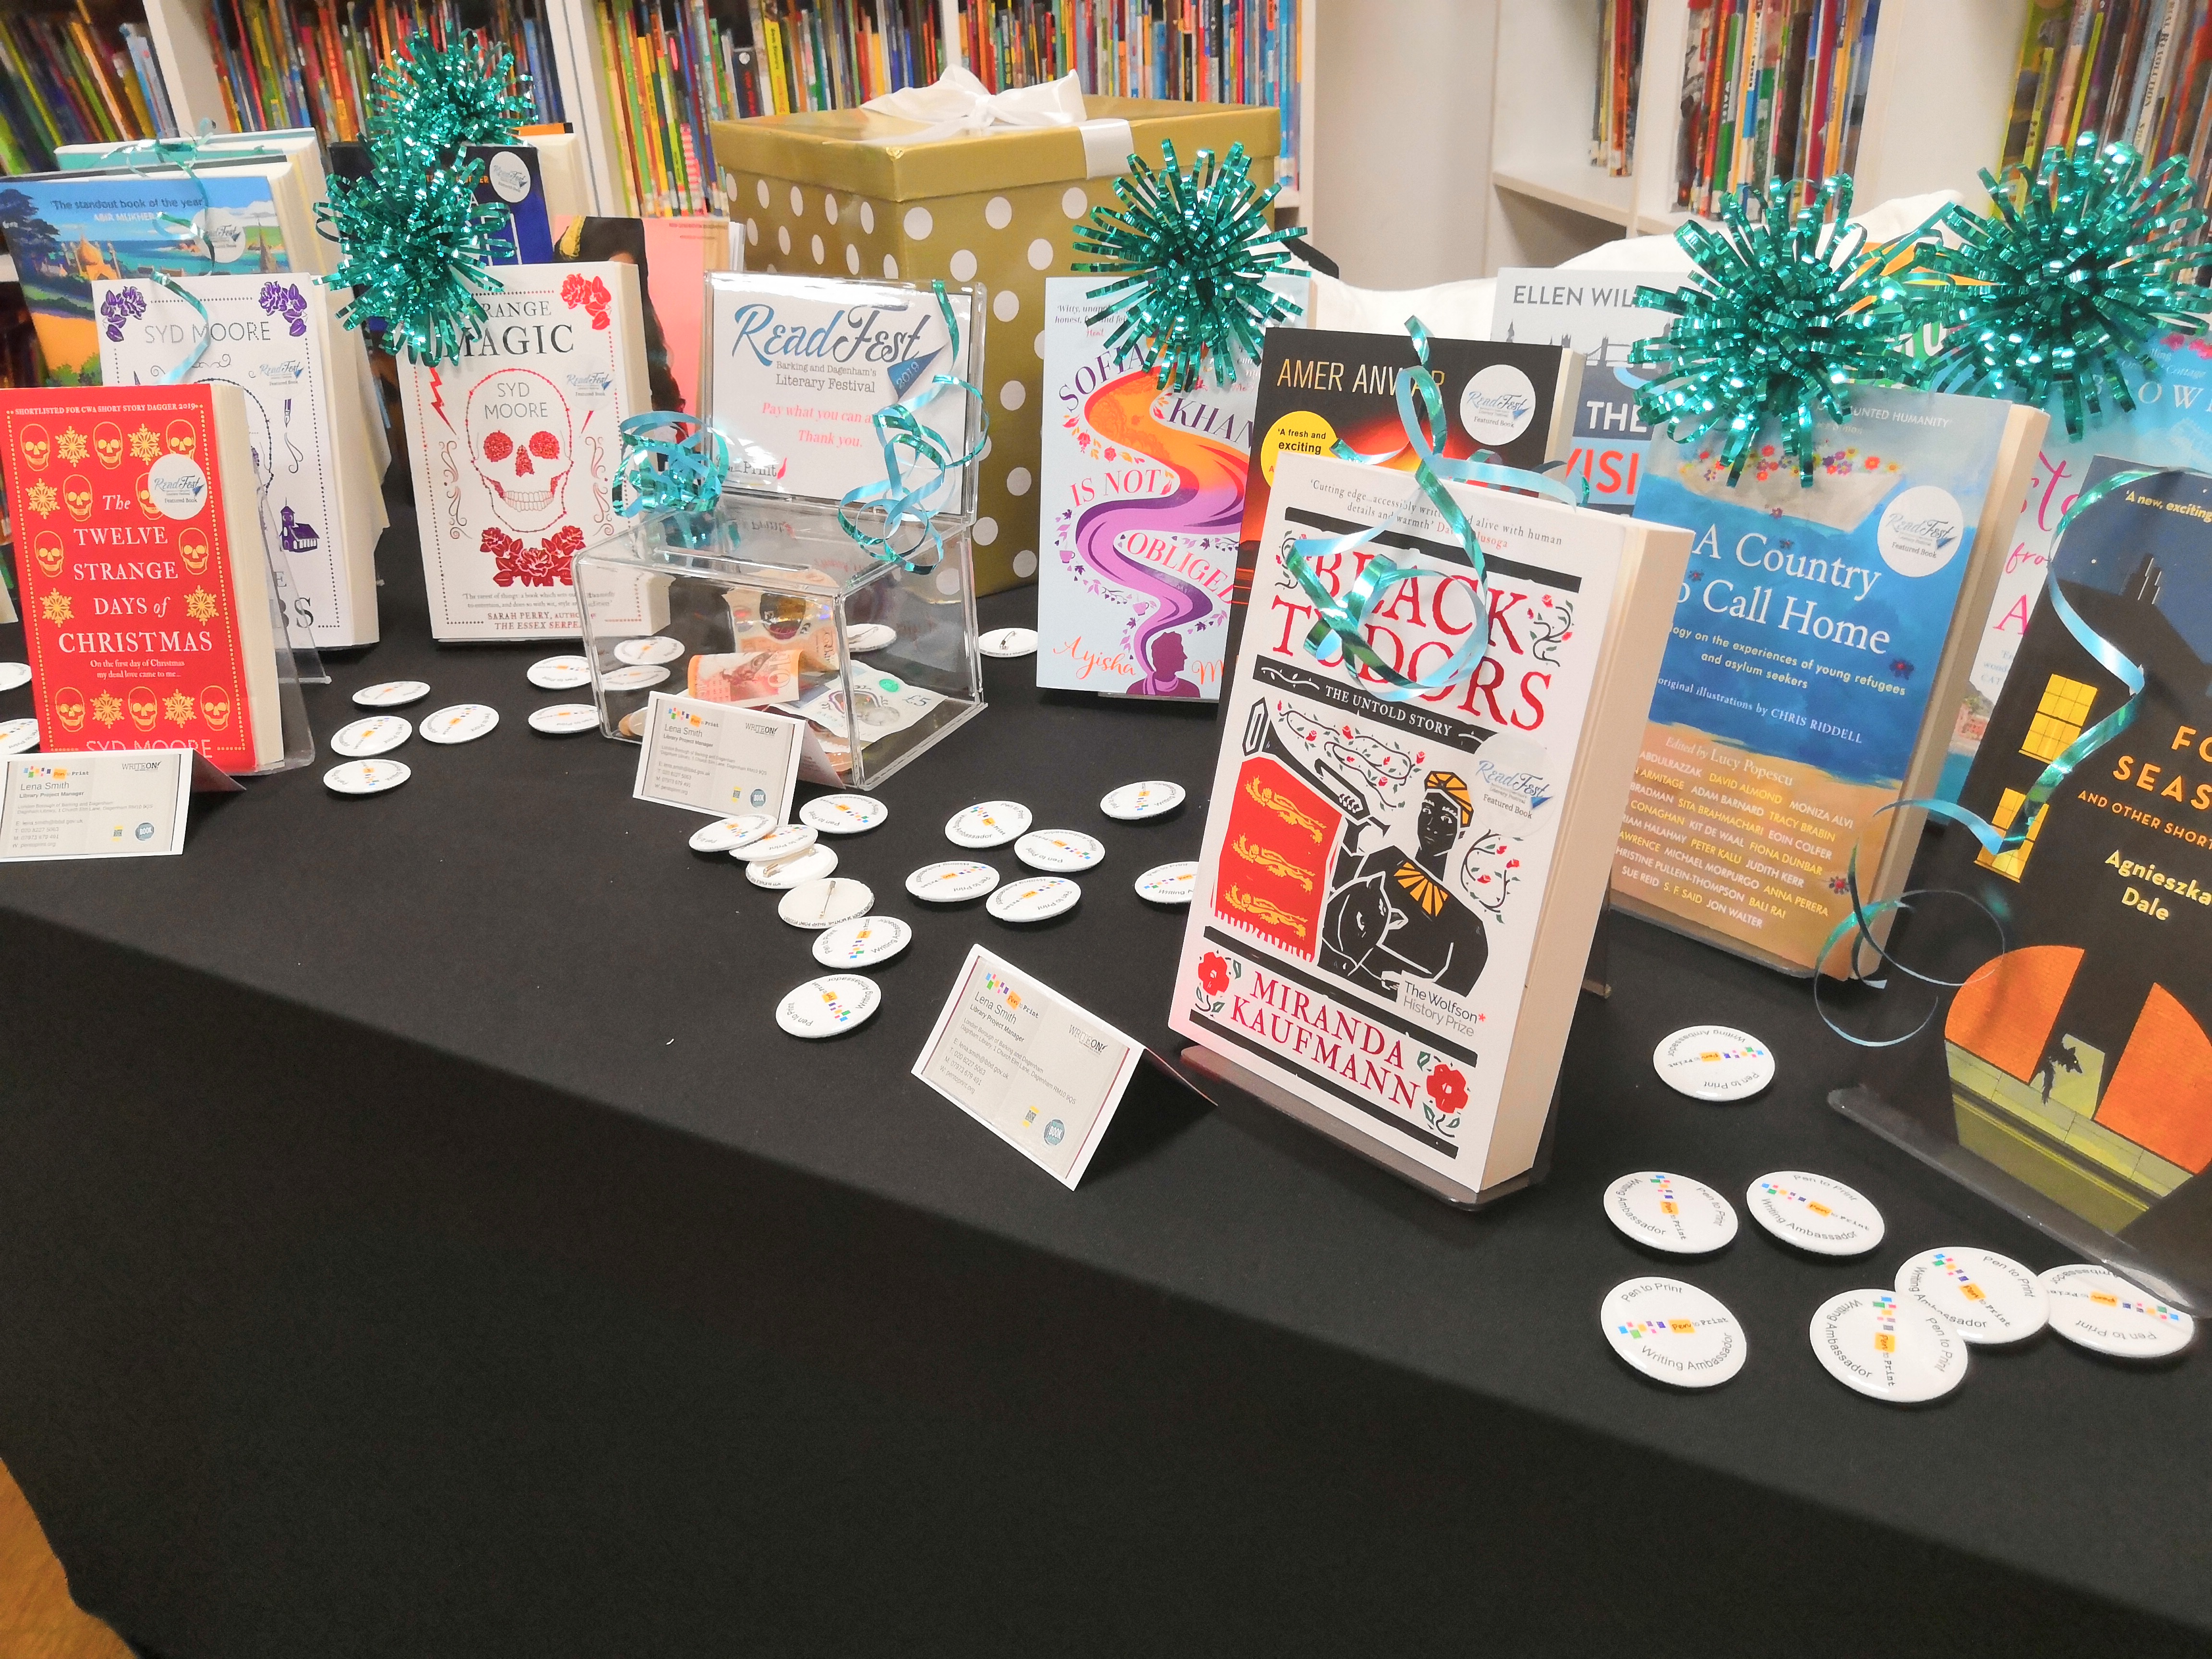 ReadFest 2019 Books